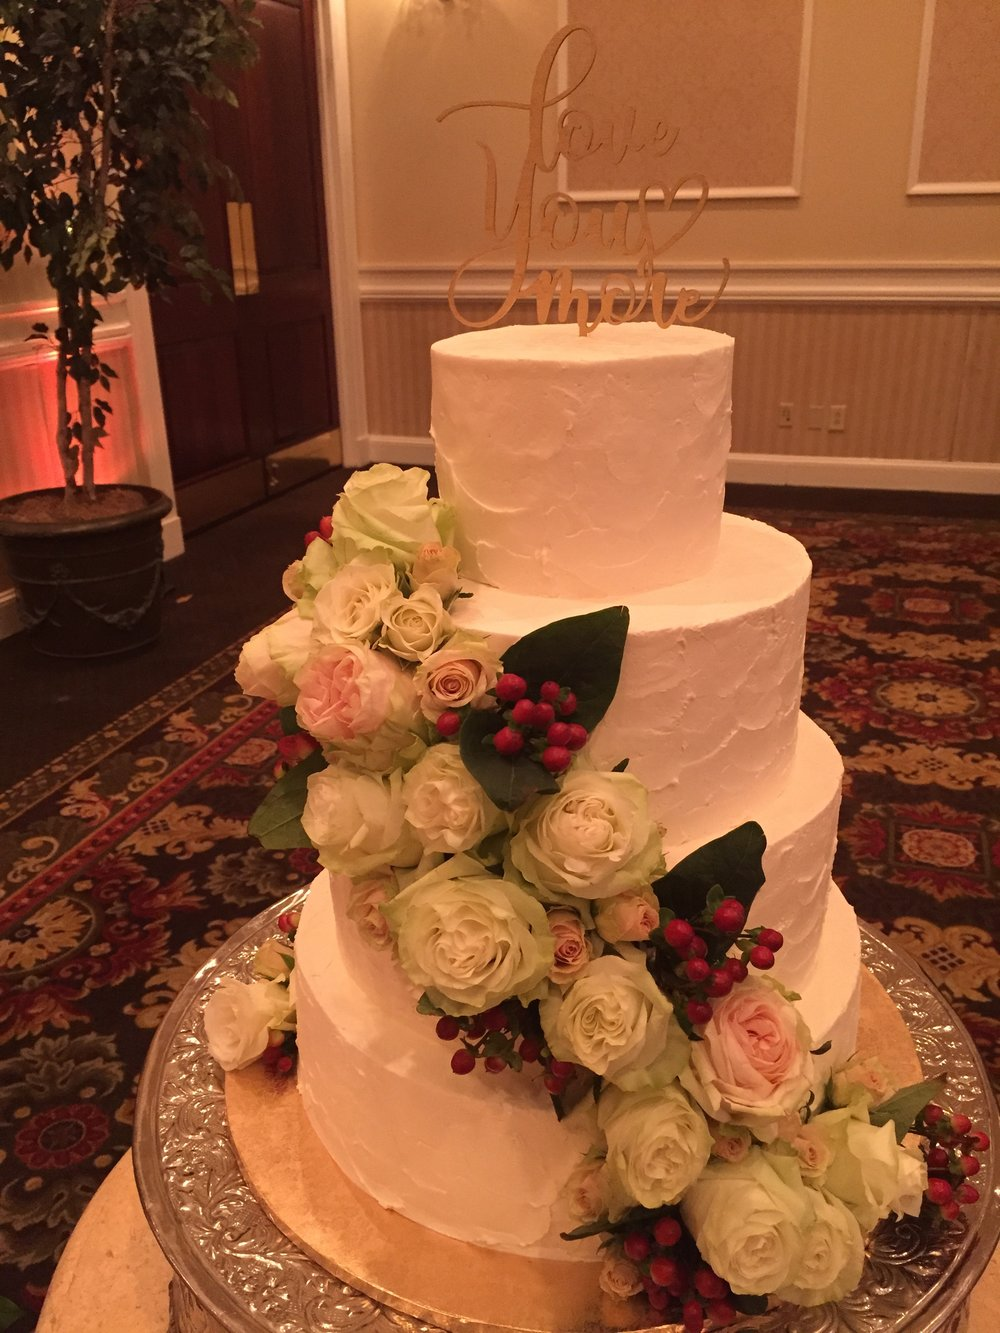 White Roses and Berries Wedding Cake